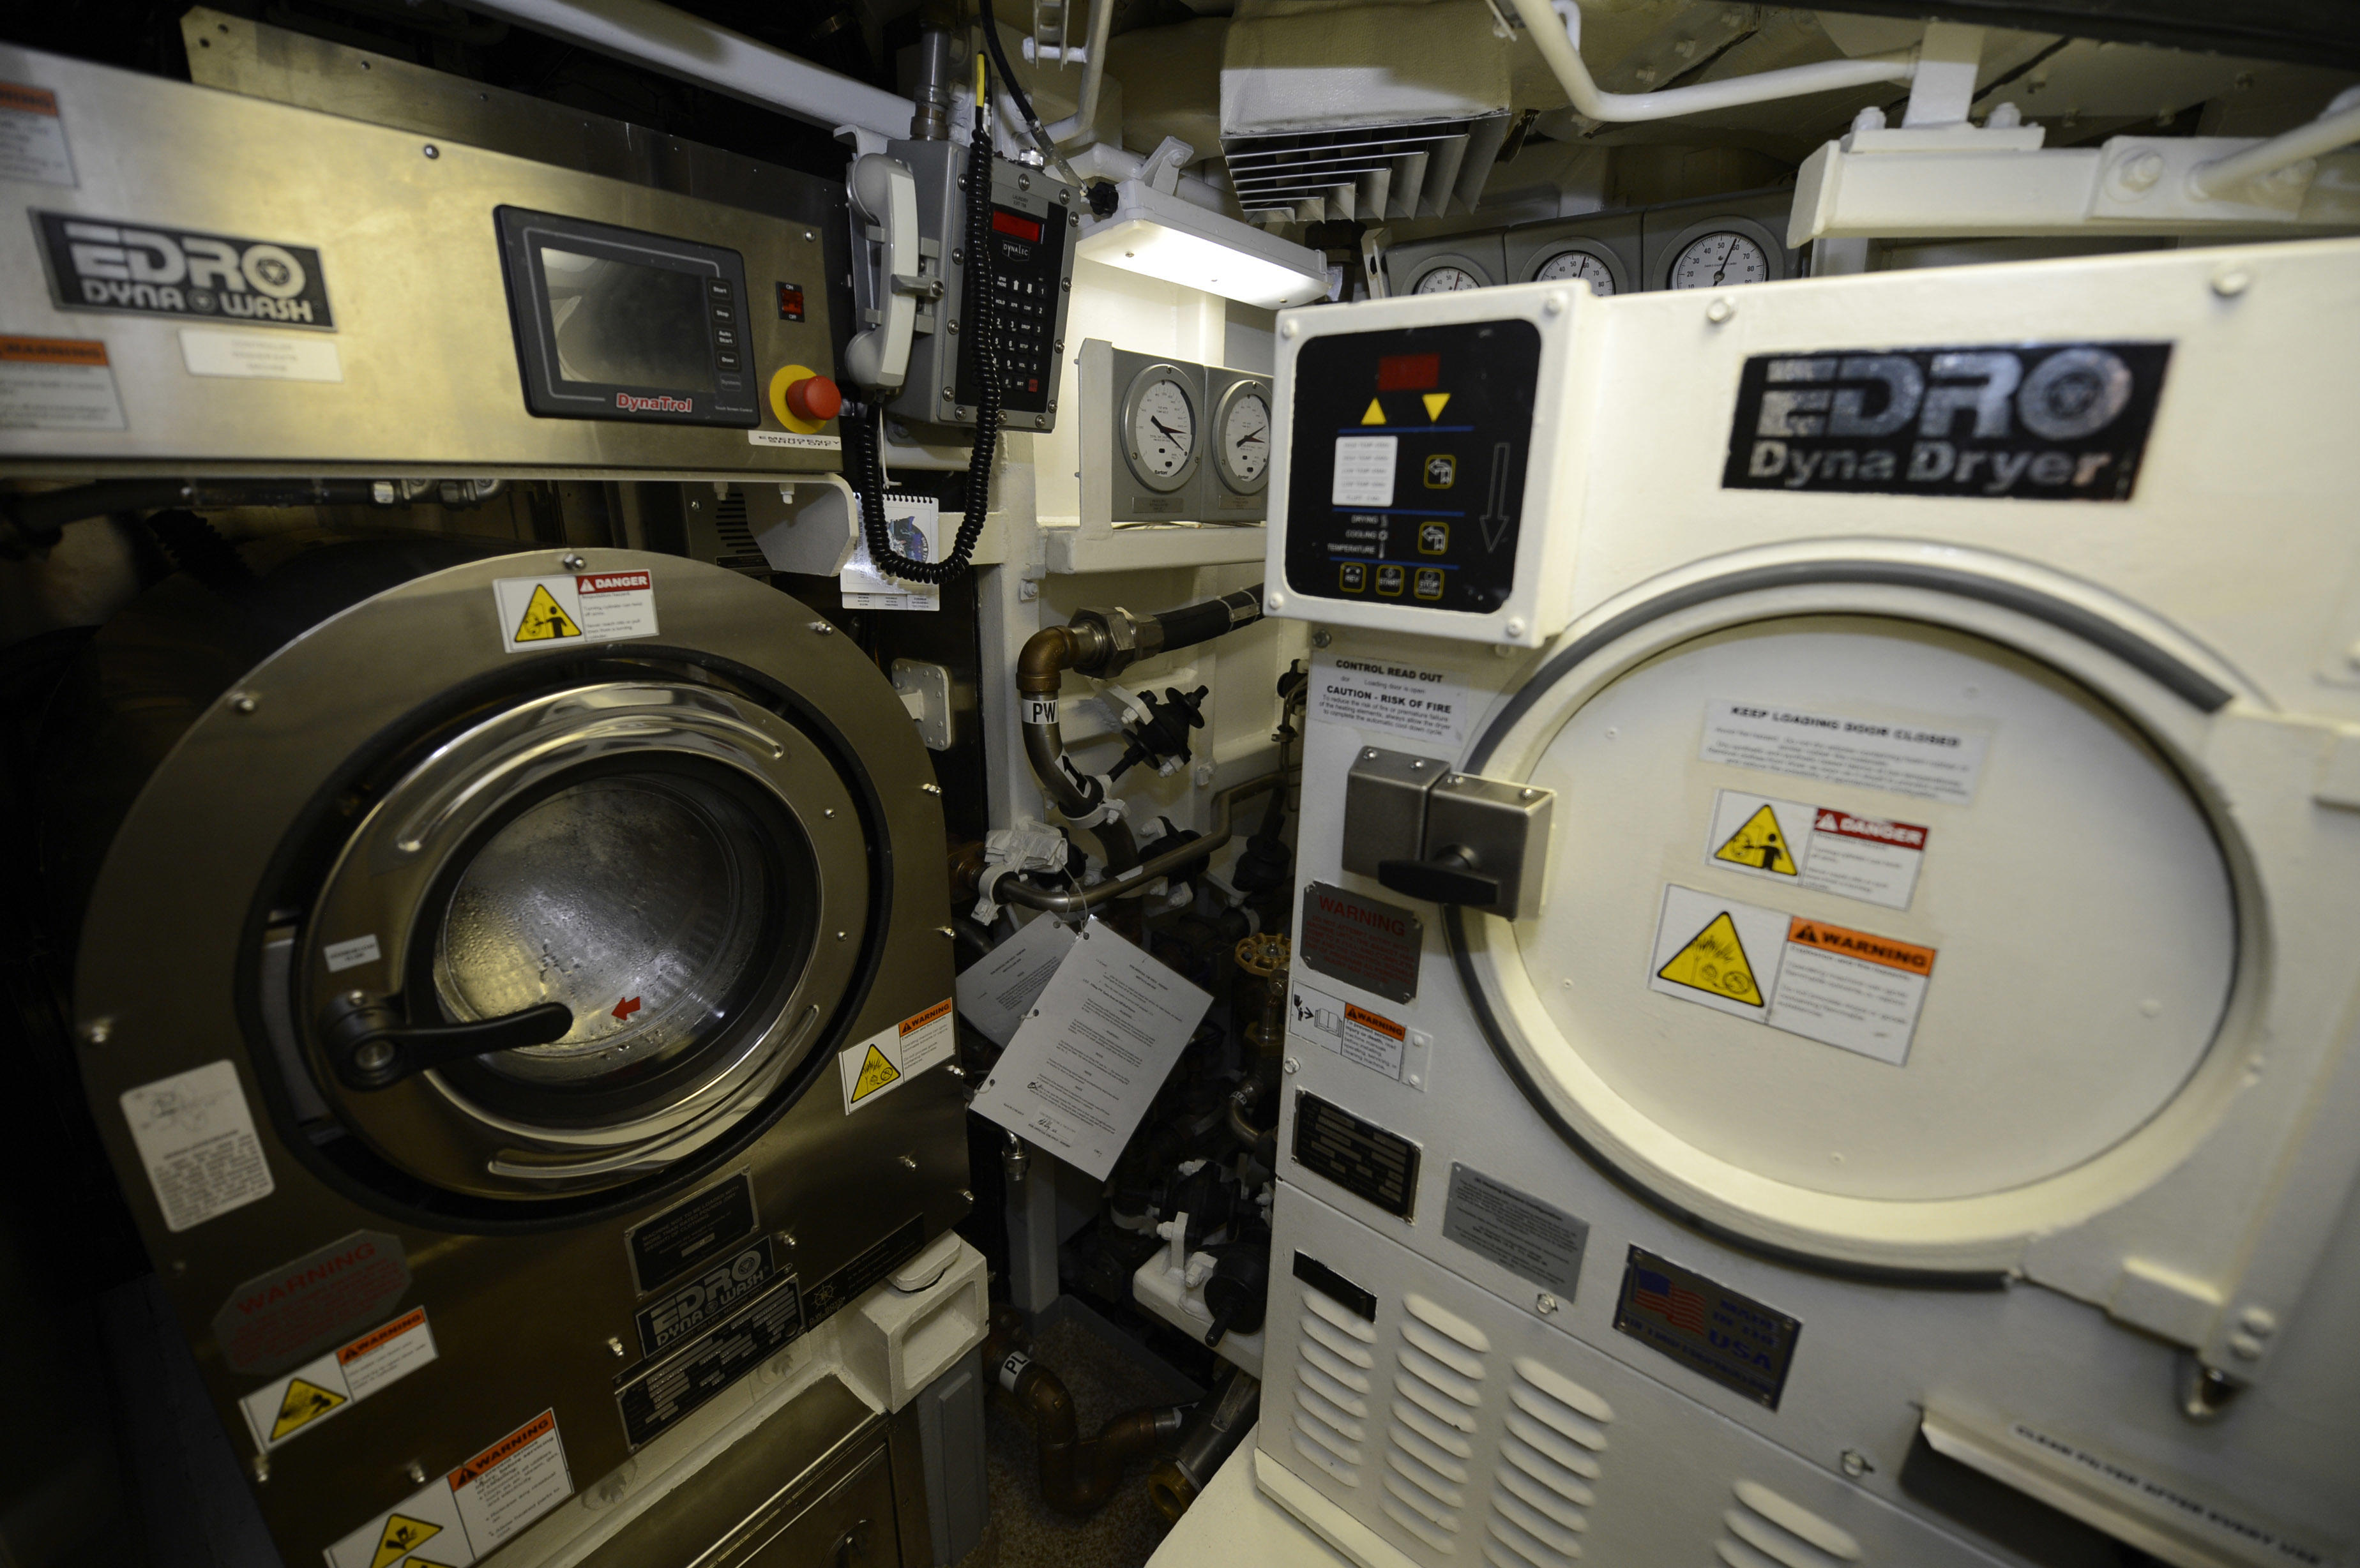 USS Washington washer and dryer